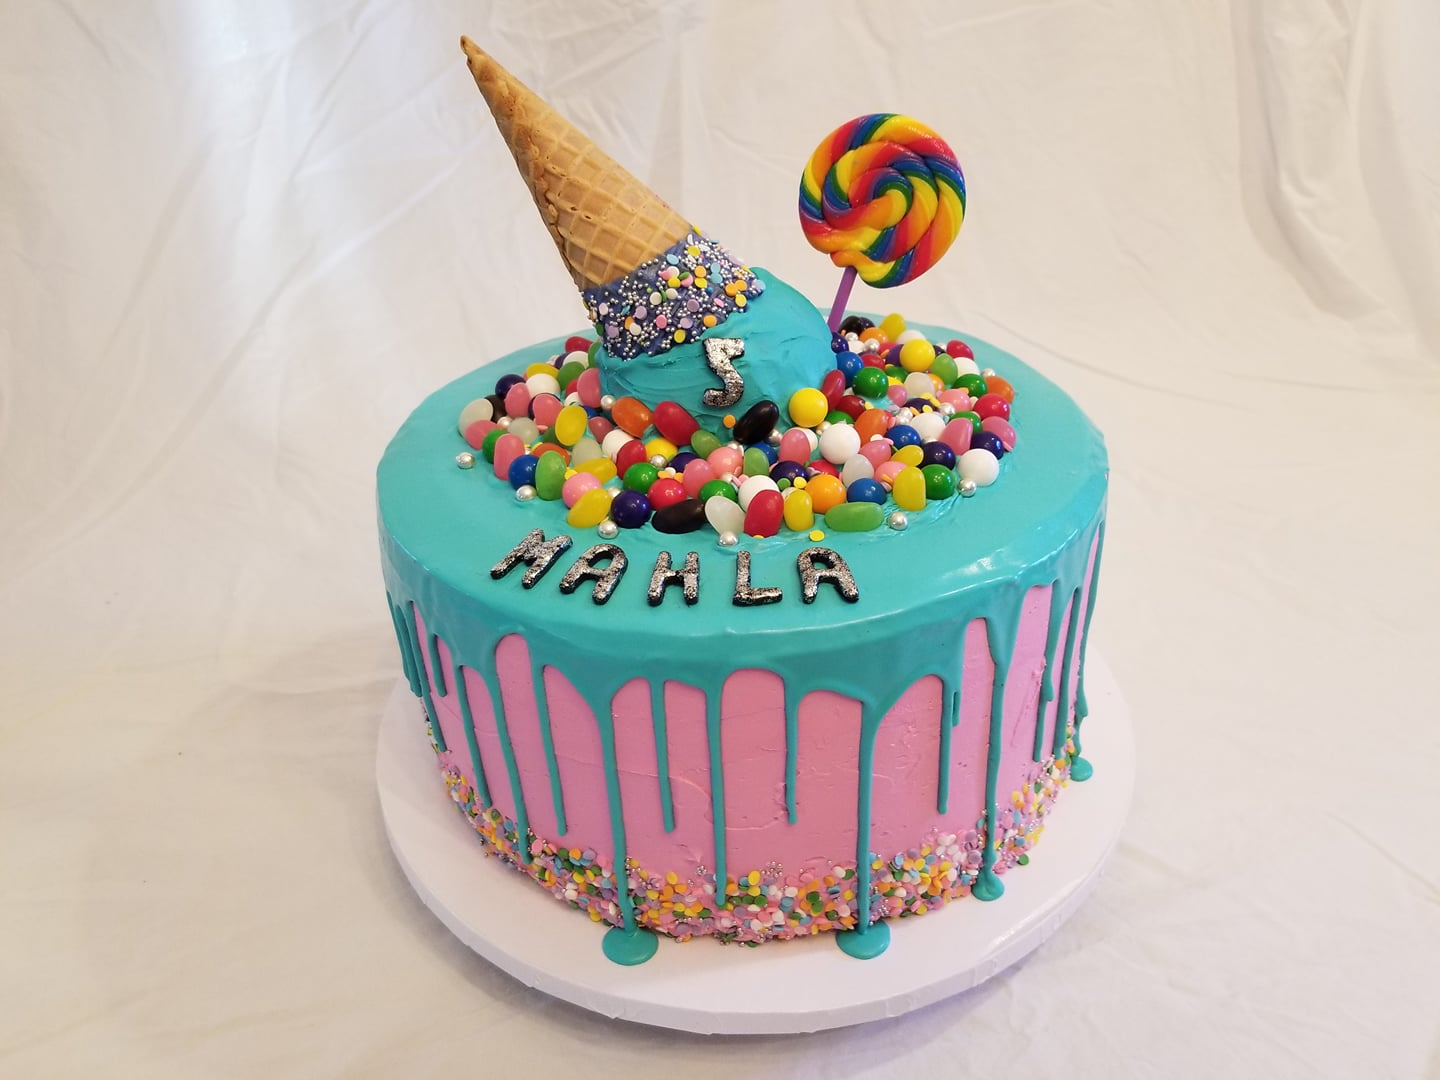 Candy Cake - by Carolyn Rodriguez